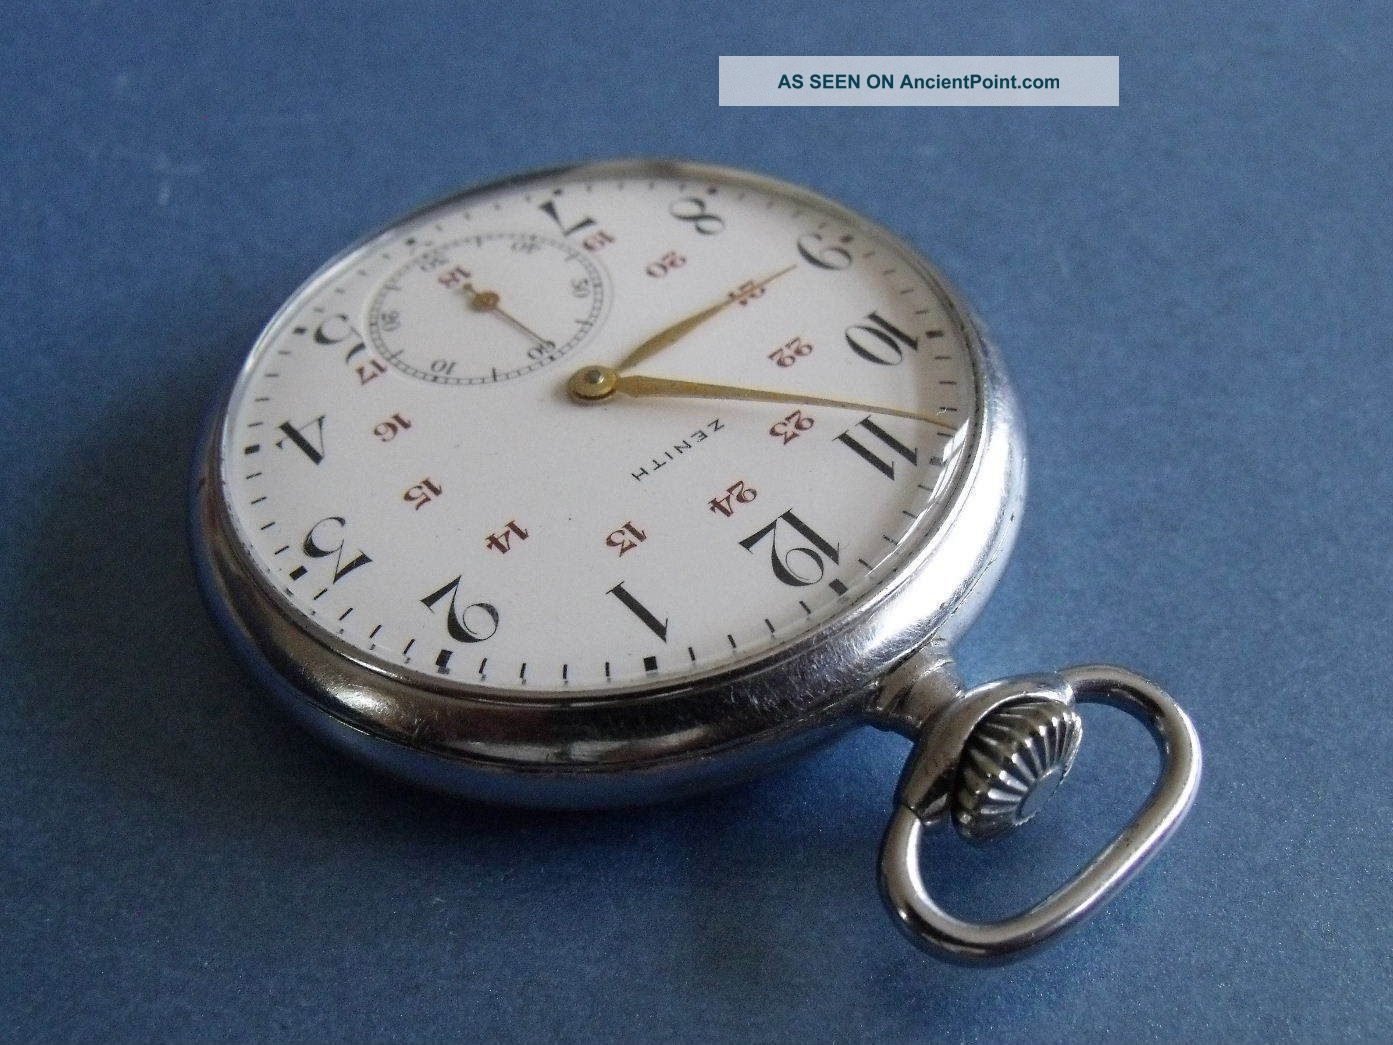 Zenith Grand Prix Pocket Watch - Rare 24 Hour Dial Cal 18 - 28 - 3 - P Pocket Watches/Chains/Fobs photo